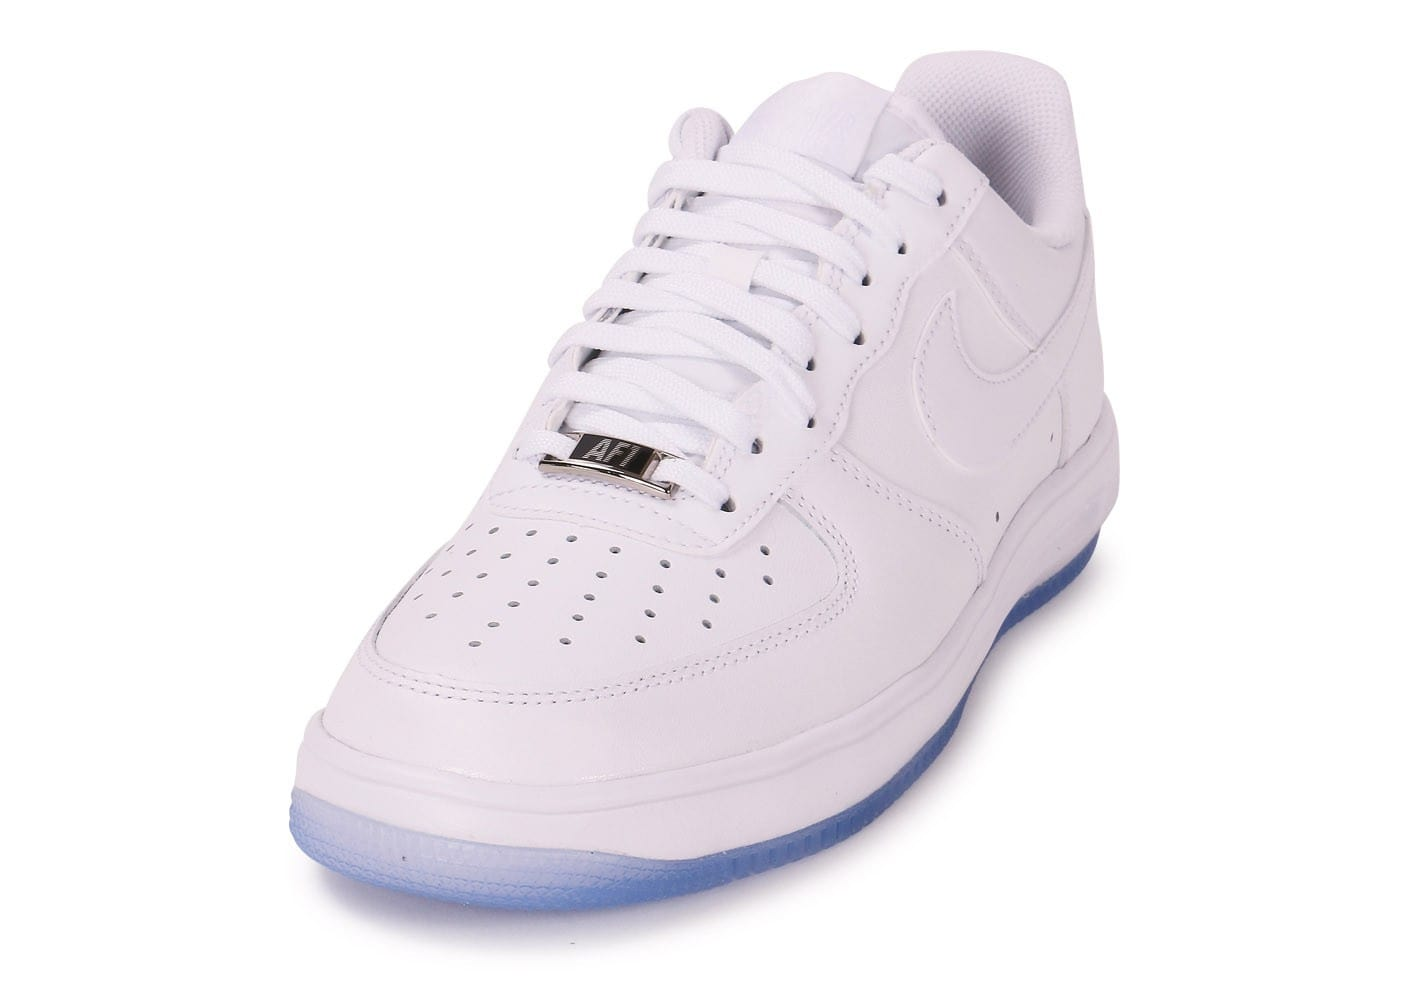 Homme Force Chausport Chaussures Blanche '14 Nike Lunar Baskets 1 Uwq5P0F1